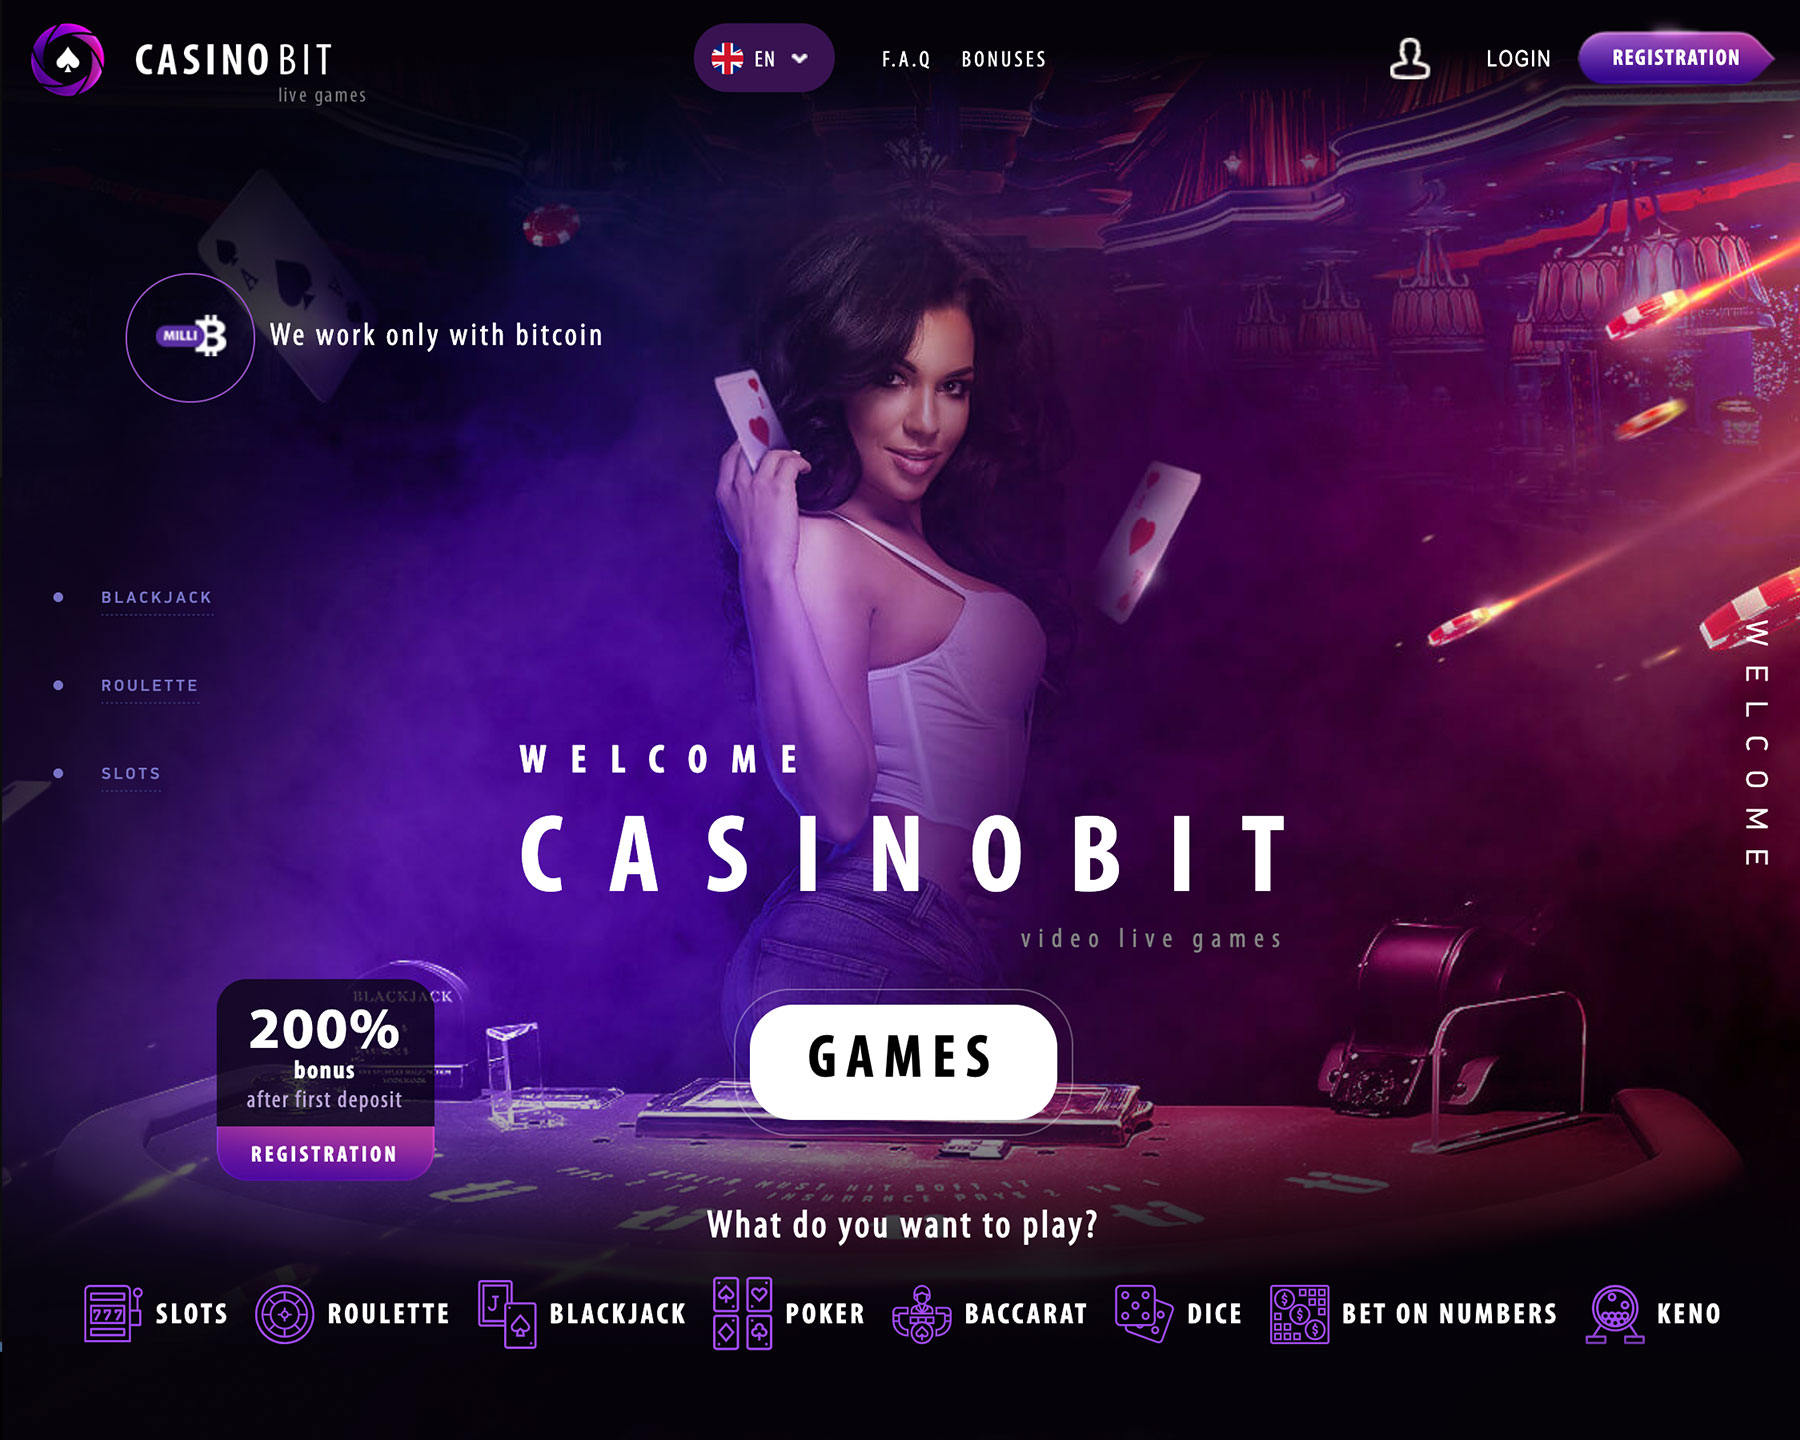 CasinoBit.io